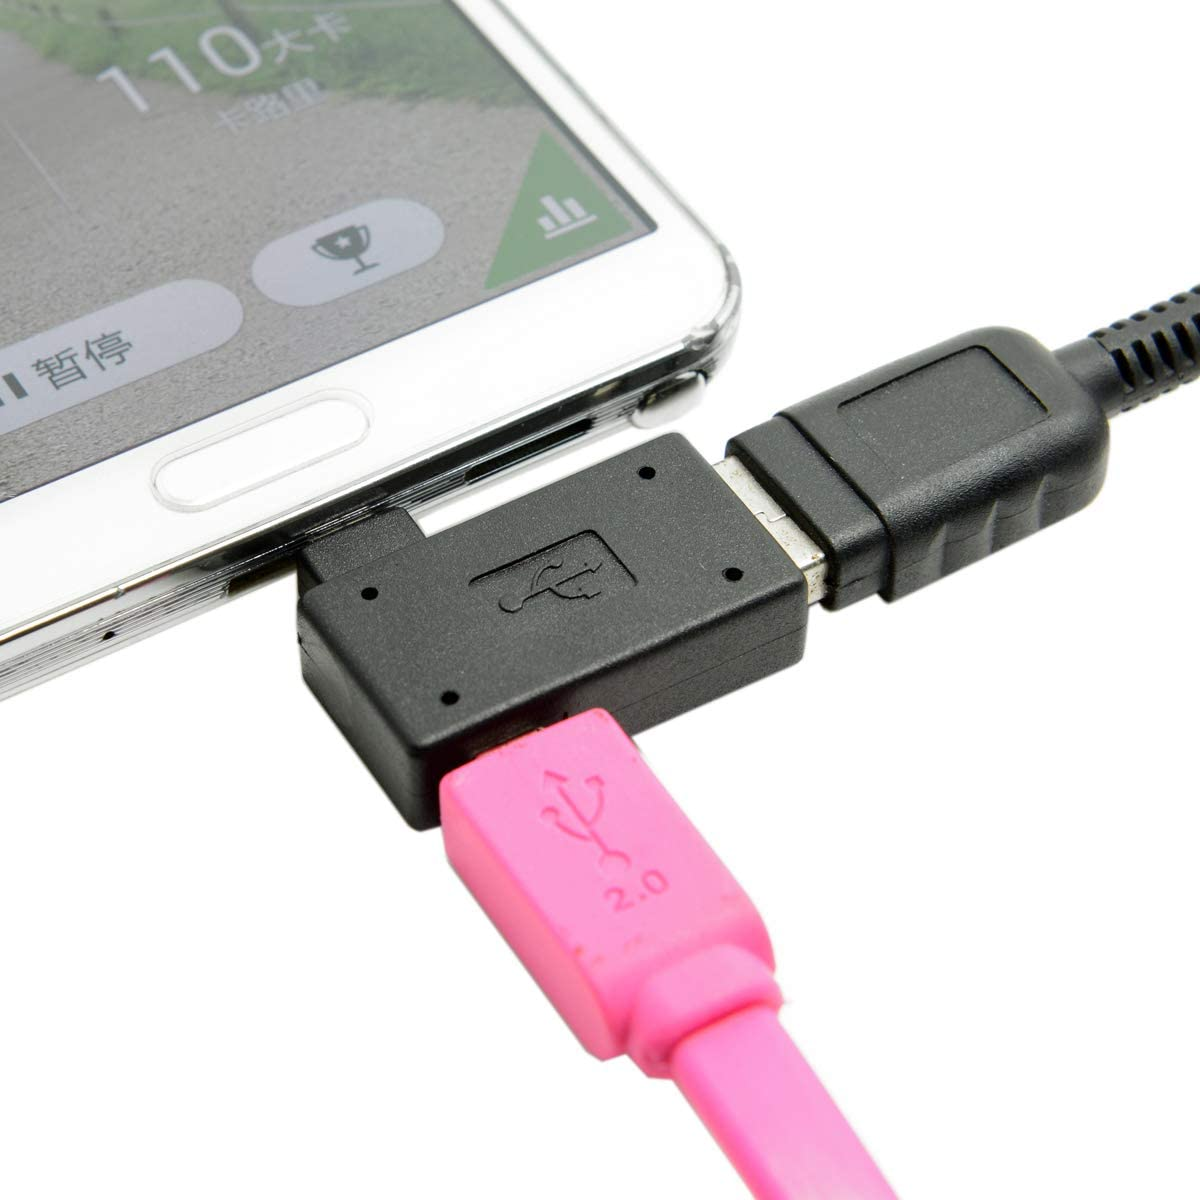 PRO OTG Cable Works for Huawei Ascend Y540 Right Angle Cable Connects You to Any Compatible USB Device with MicroUSB